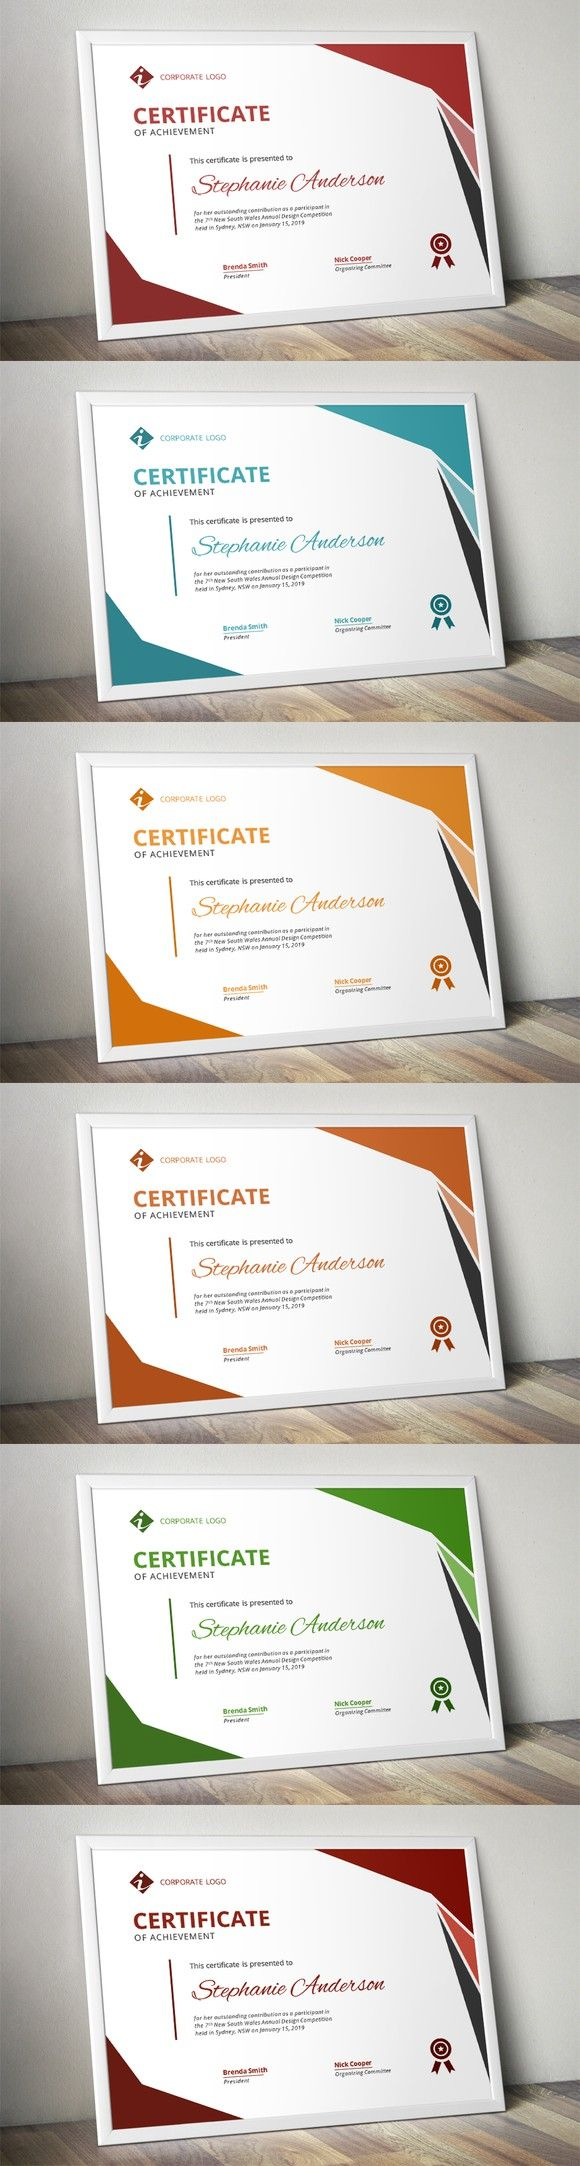 Modern MS Word certificate design. Printables. $5.00                                                                                                                                                                                 More